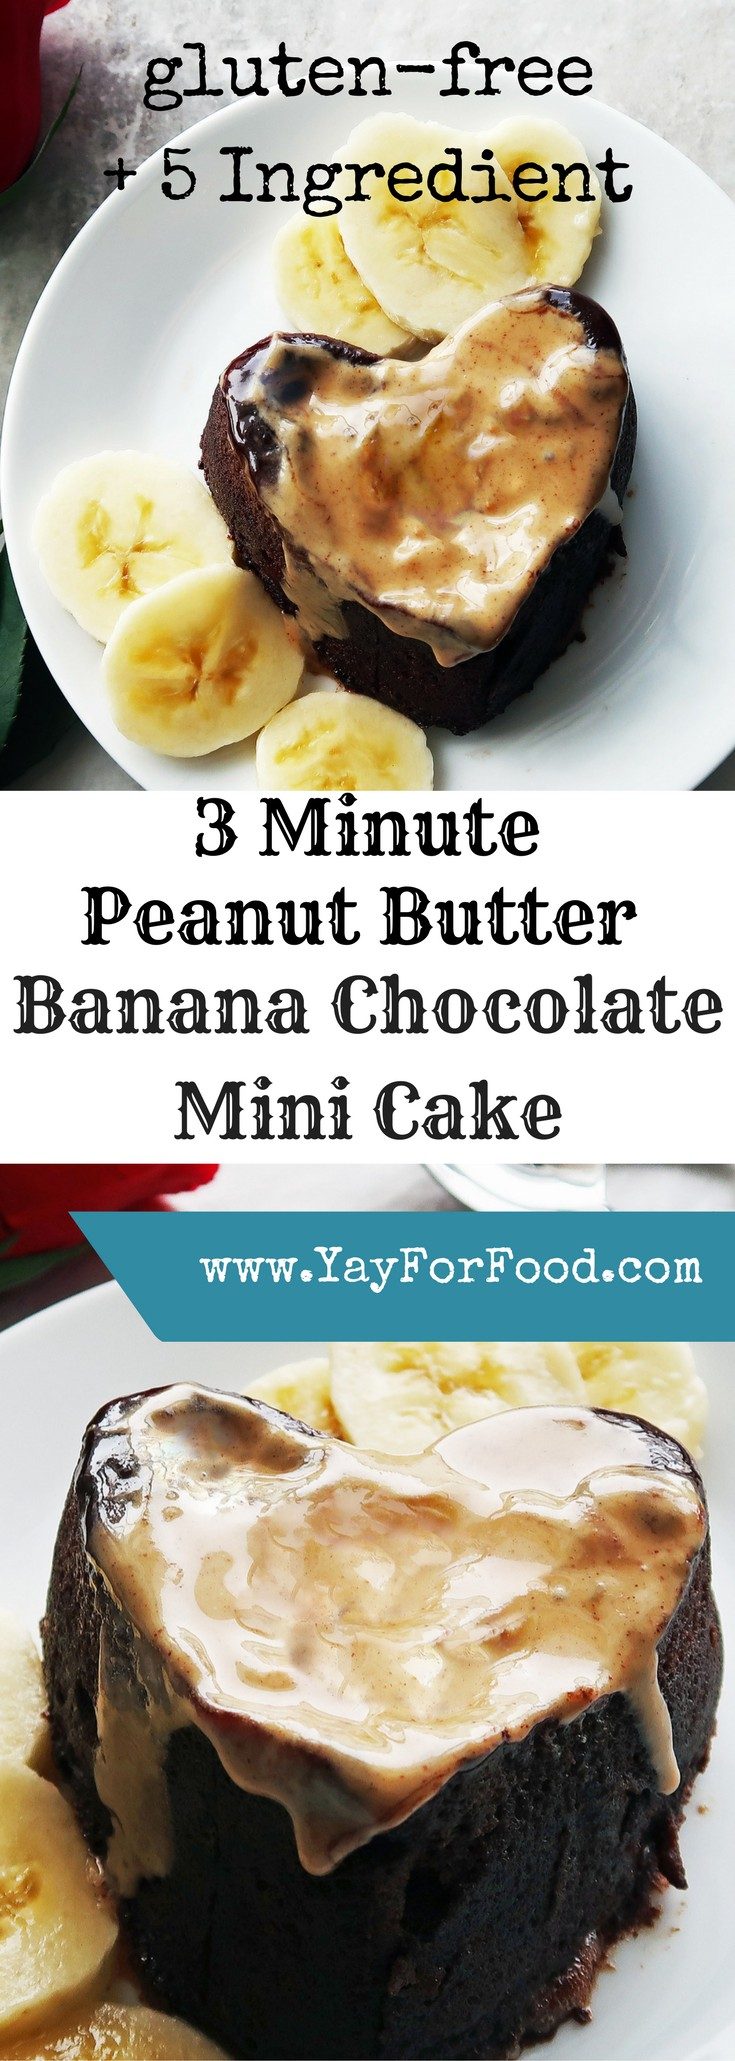 This doesn't get any easier! 5 ingredients and 3 minutes (or faster) from start to finish to get a tasty, gluten-free mini chocolate cake with peanut butter and banana. An easy microwave creation!